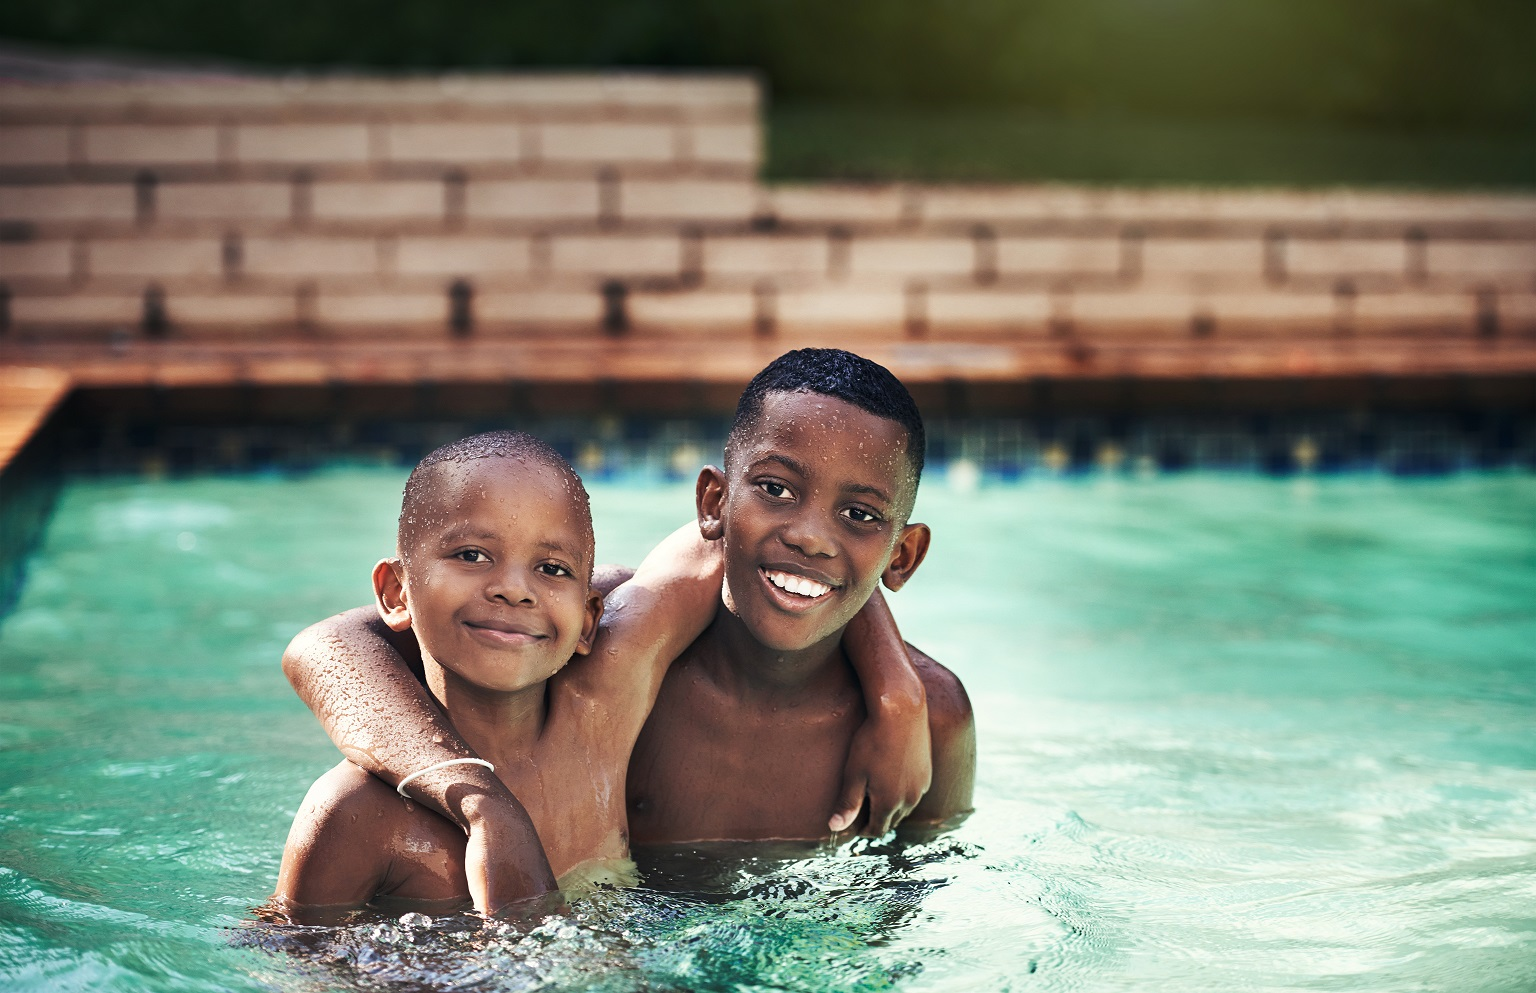 Shot of two young boys having fun together in a swimming pool.